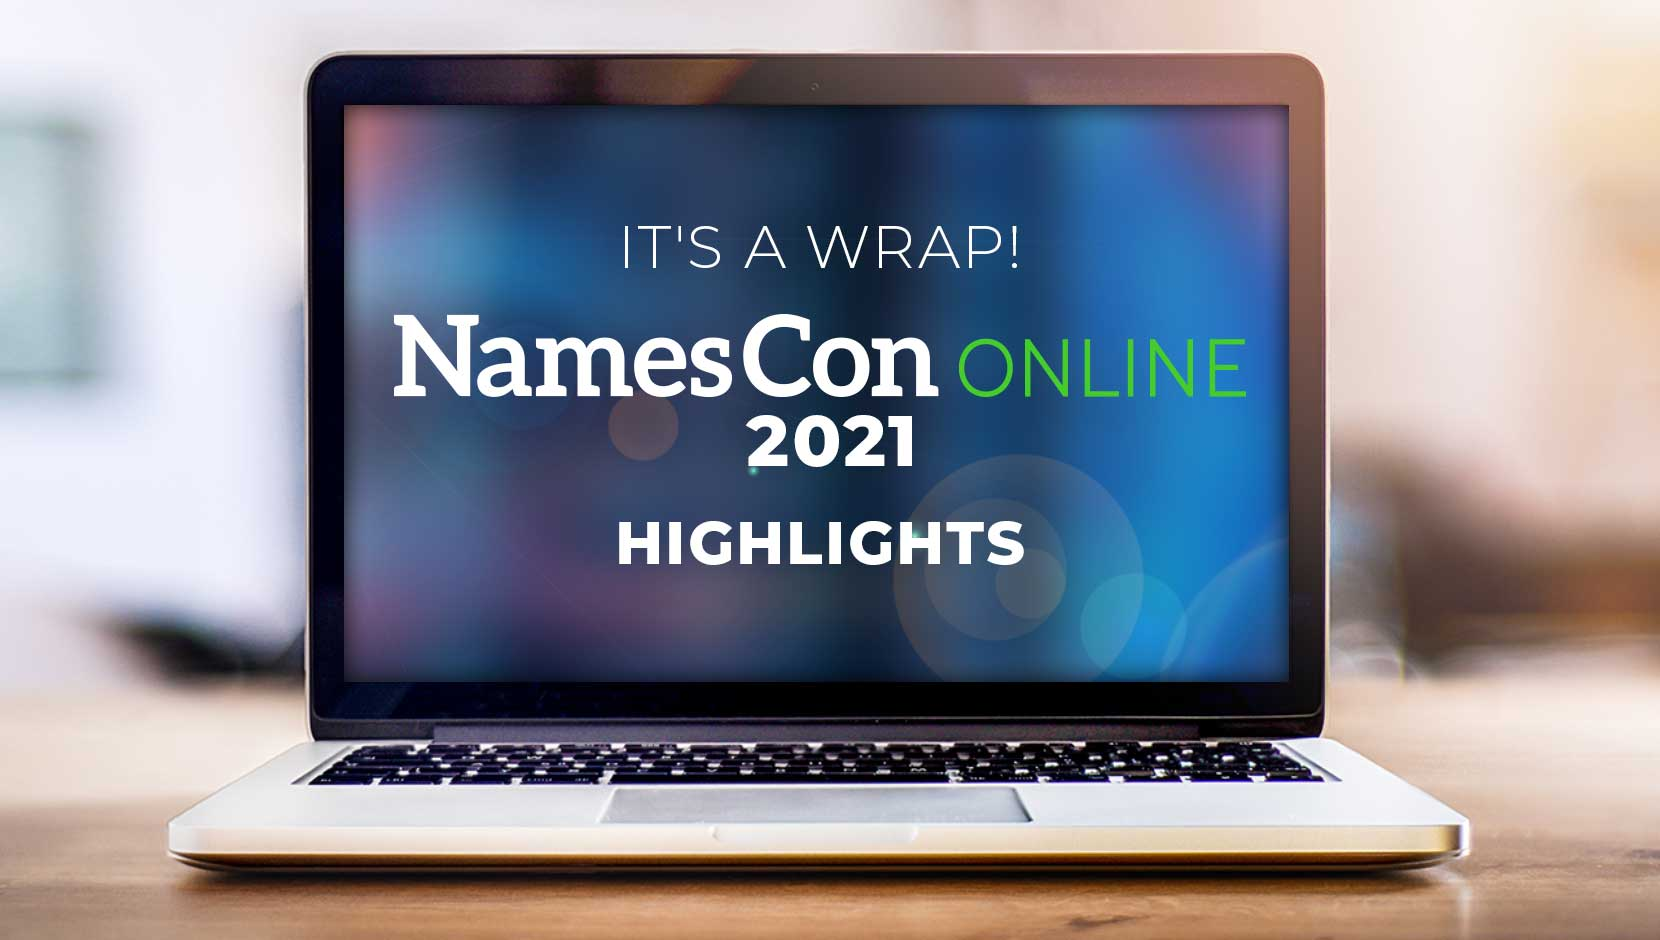 It's a Wrap! NamesCon Online 2021 Highlights